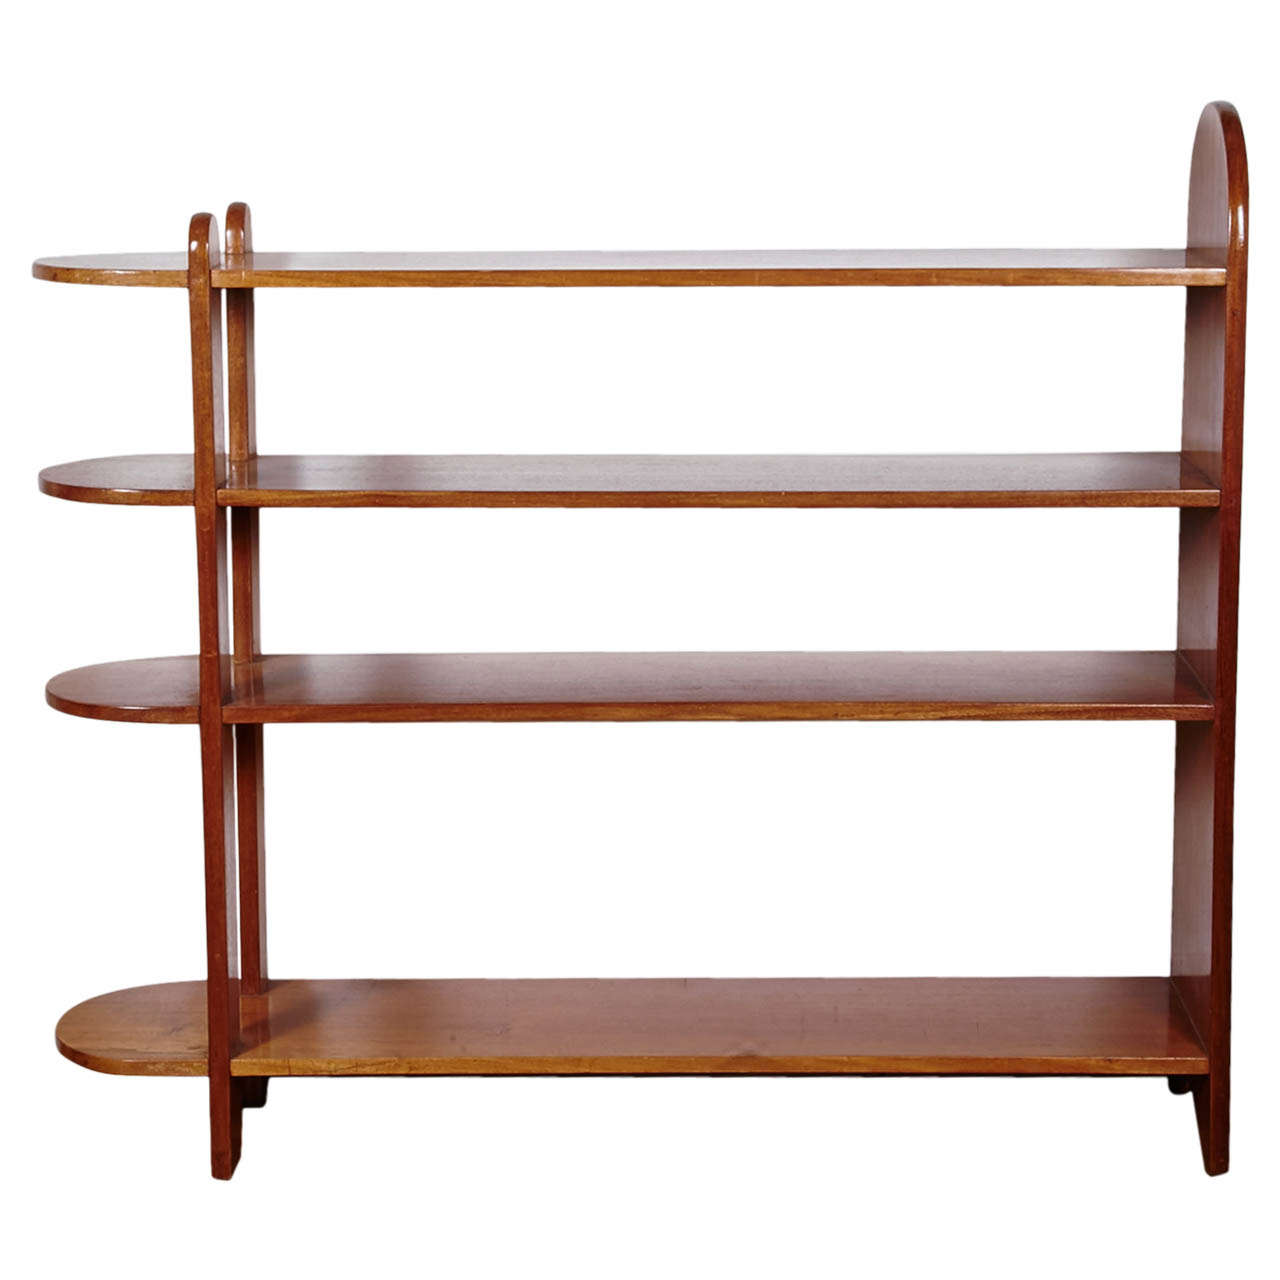 Art Deco Mahogany Shelf or Bookcase by Eugène Printz, 1932 For Sale